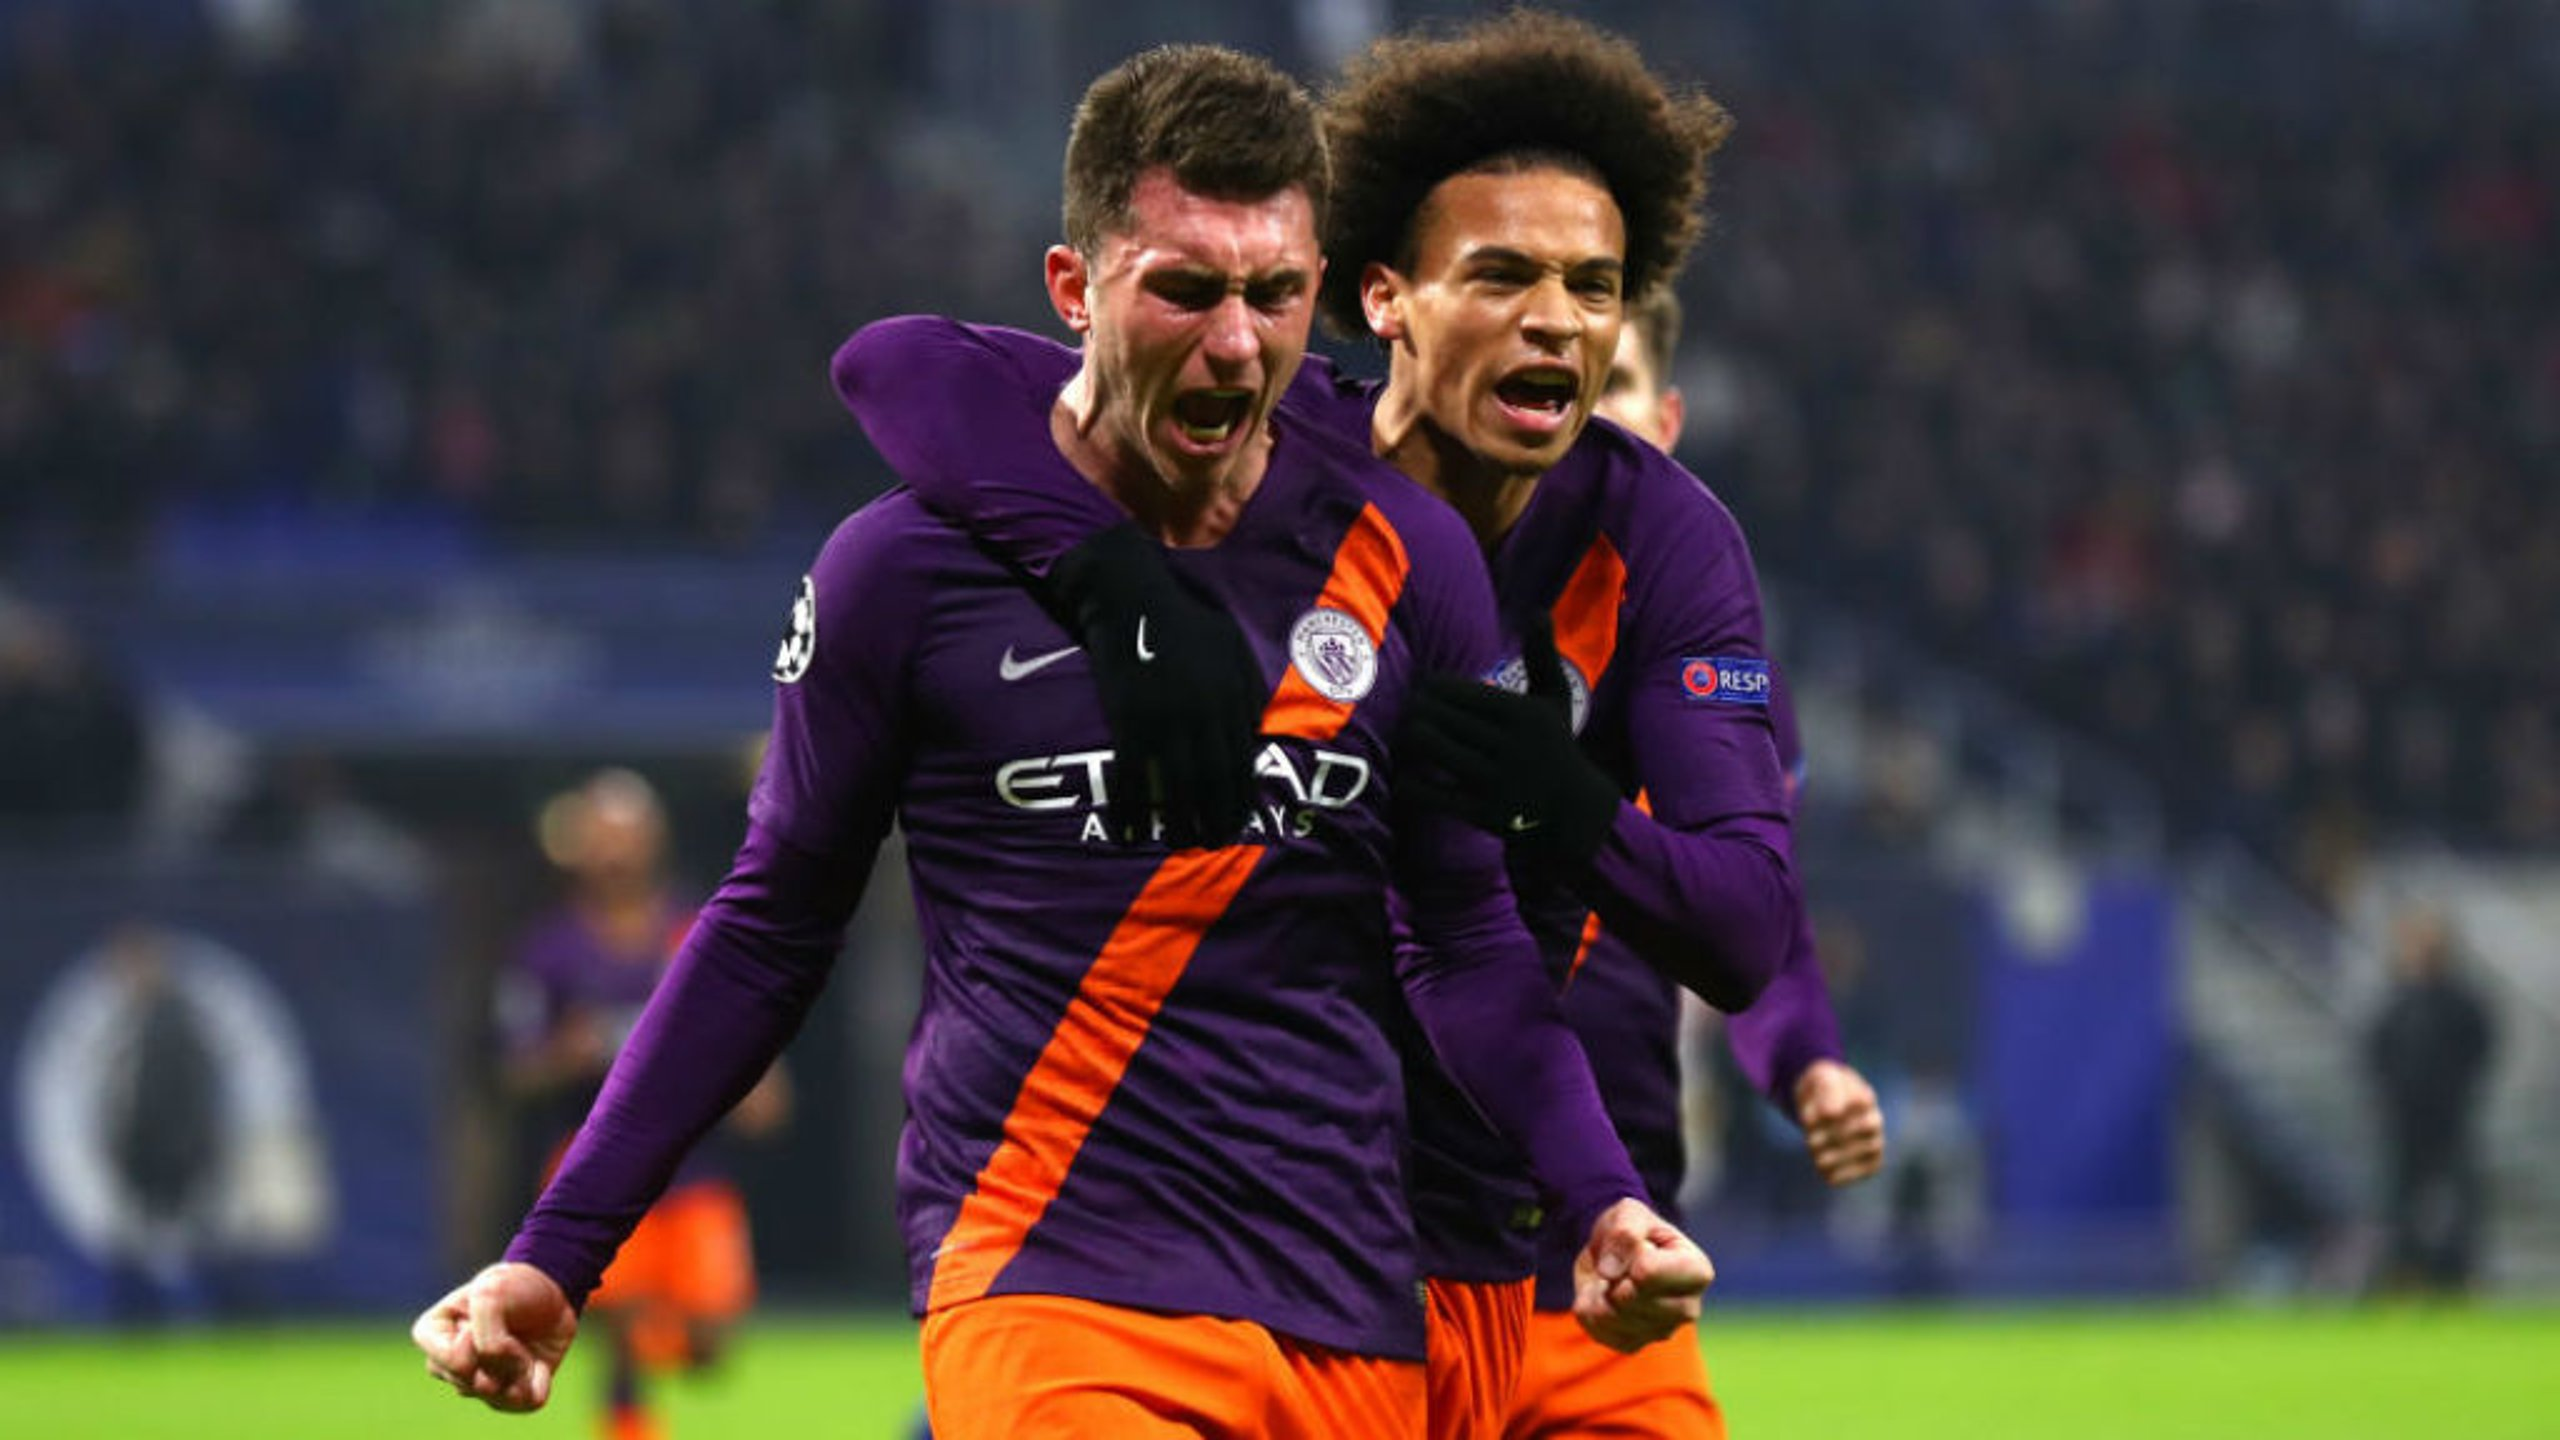 ROAR POWER: The expression on the face of Aymeric Laporte says it all